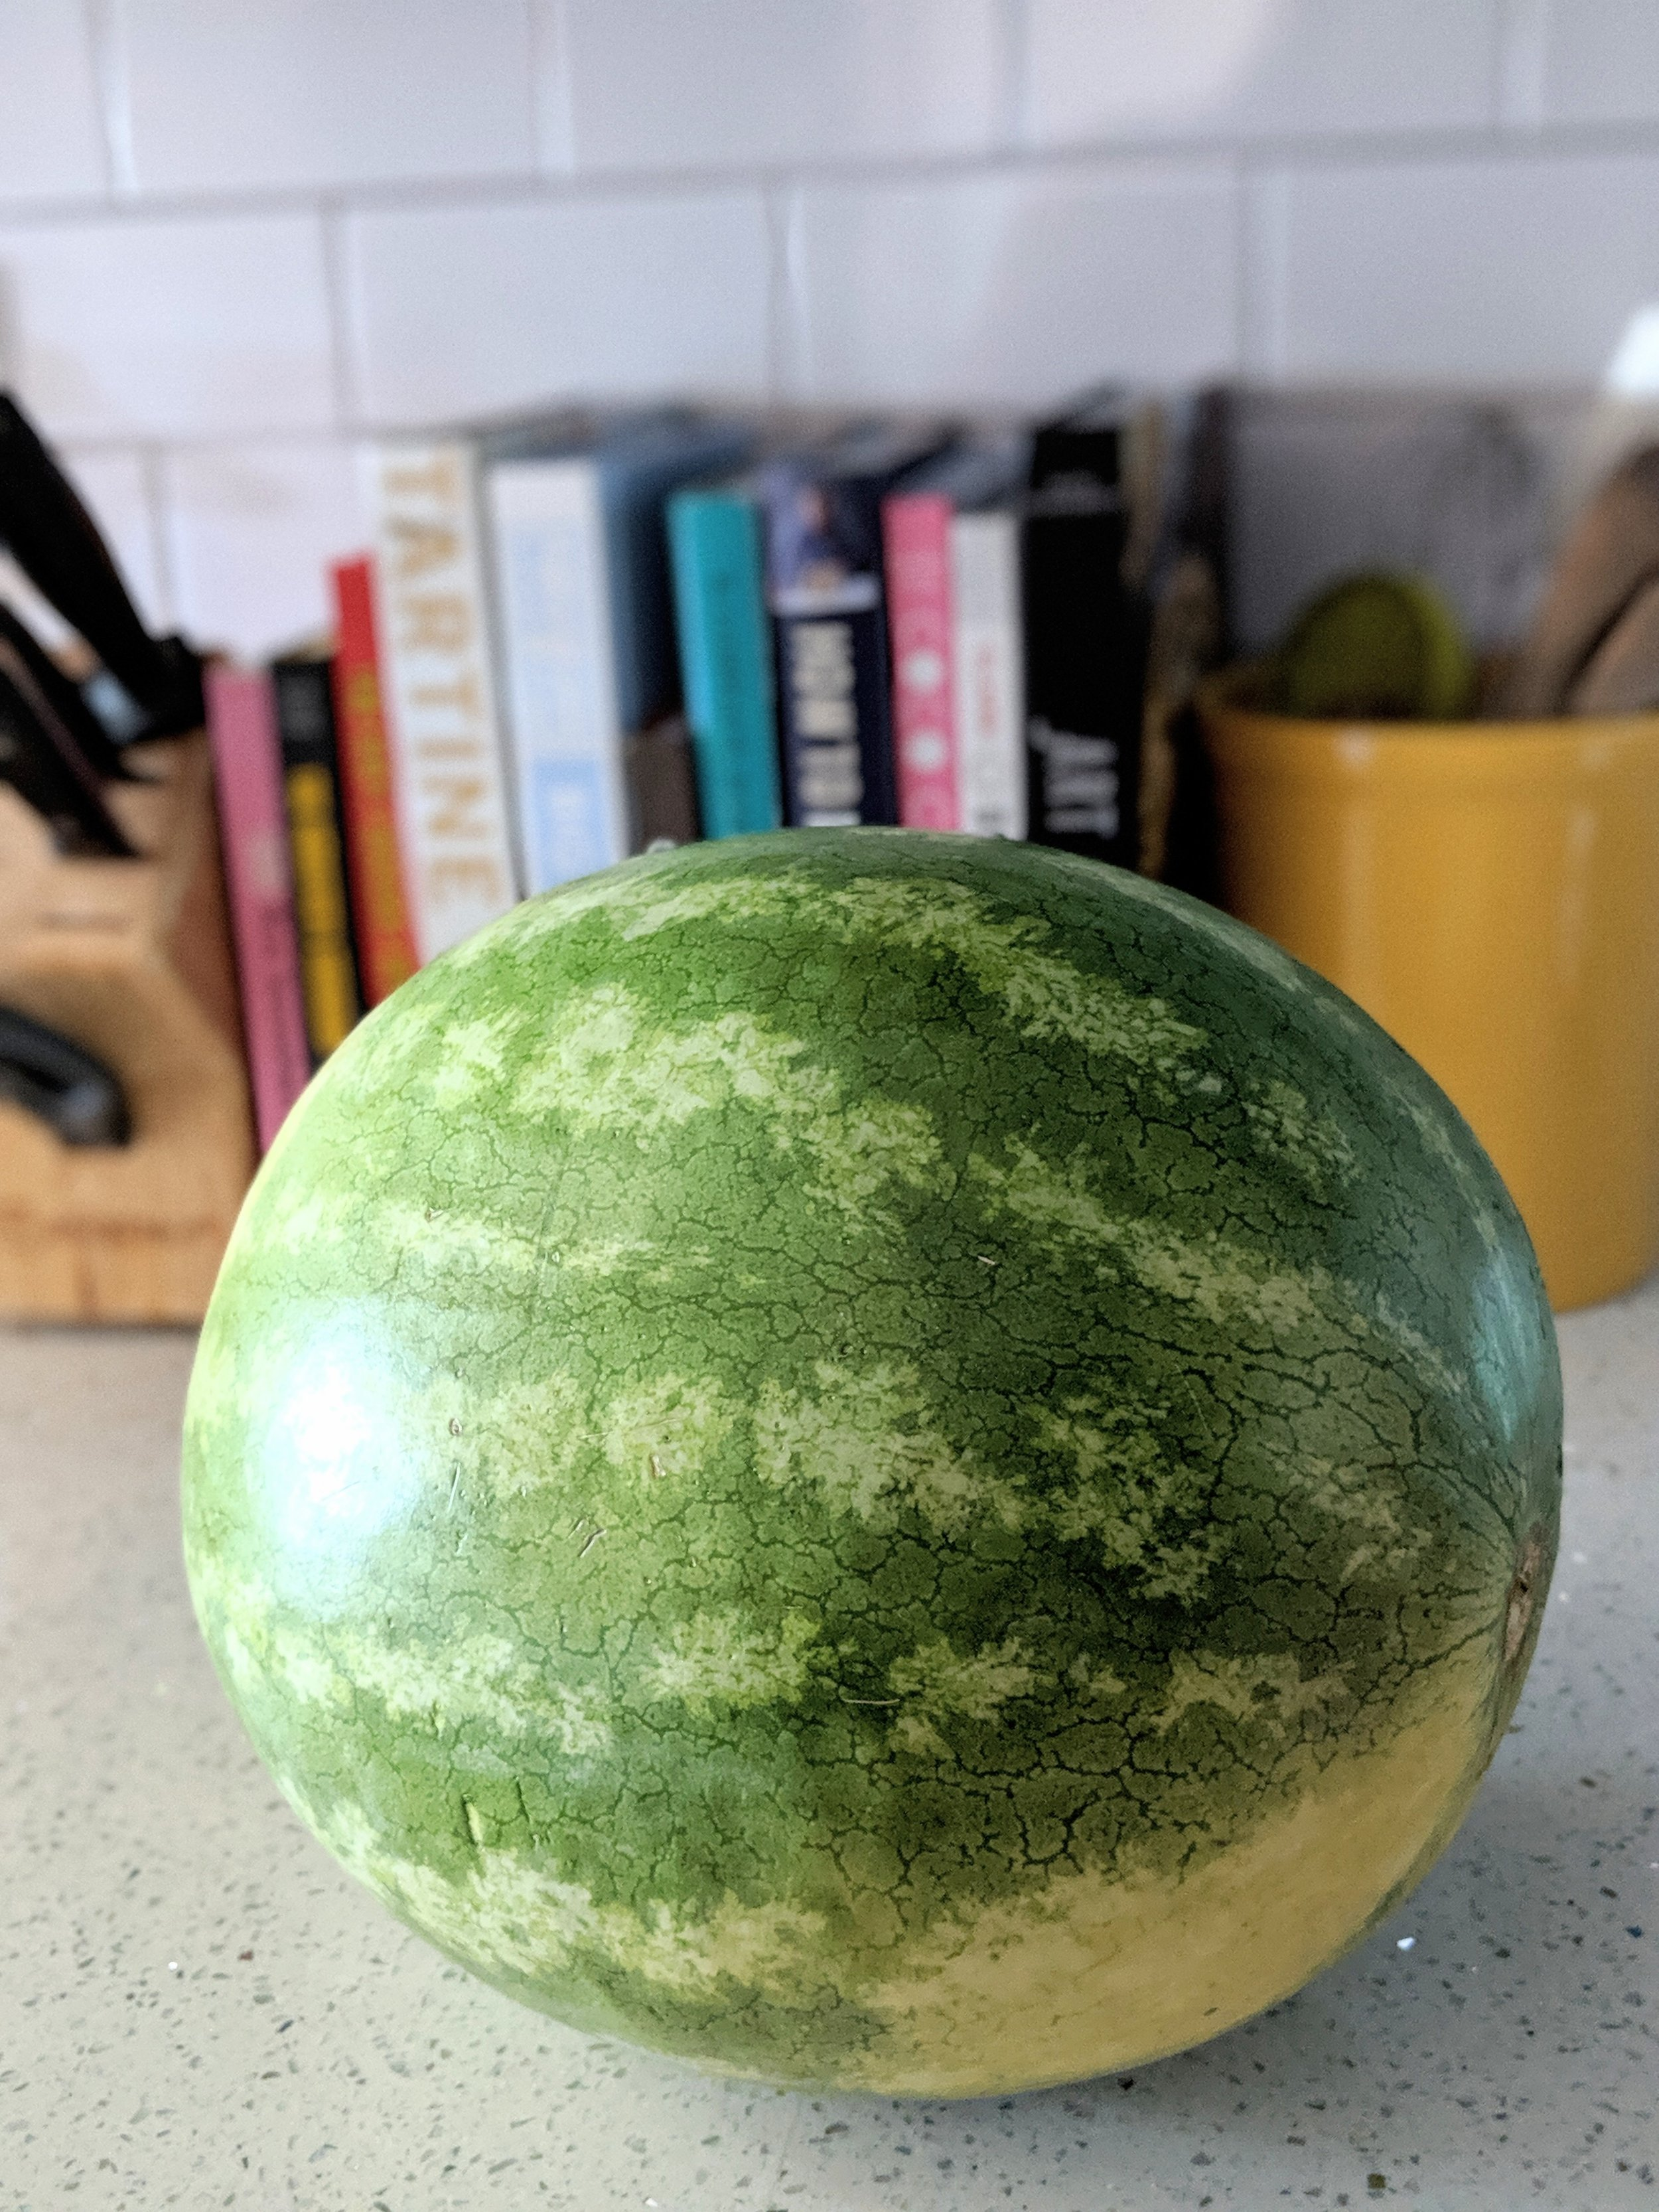 The watermelon in question